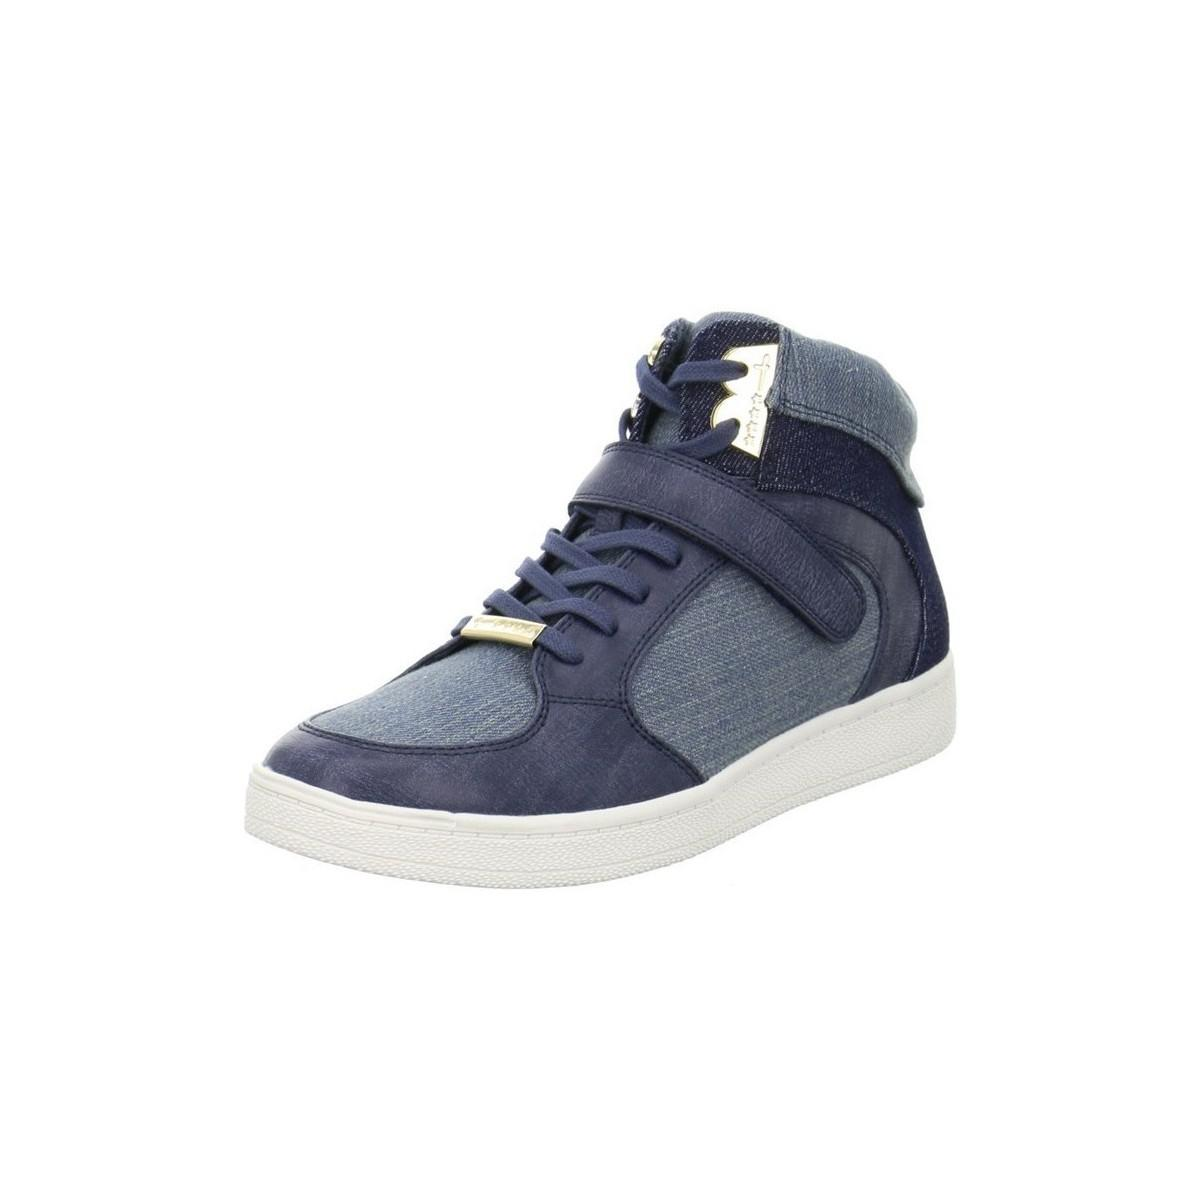 Tamaris Soya women's Shoes (High-top Trainers) in Cheap Sale Supply t9feHd4